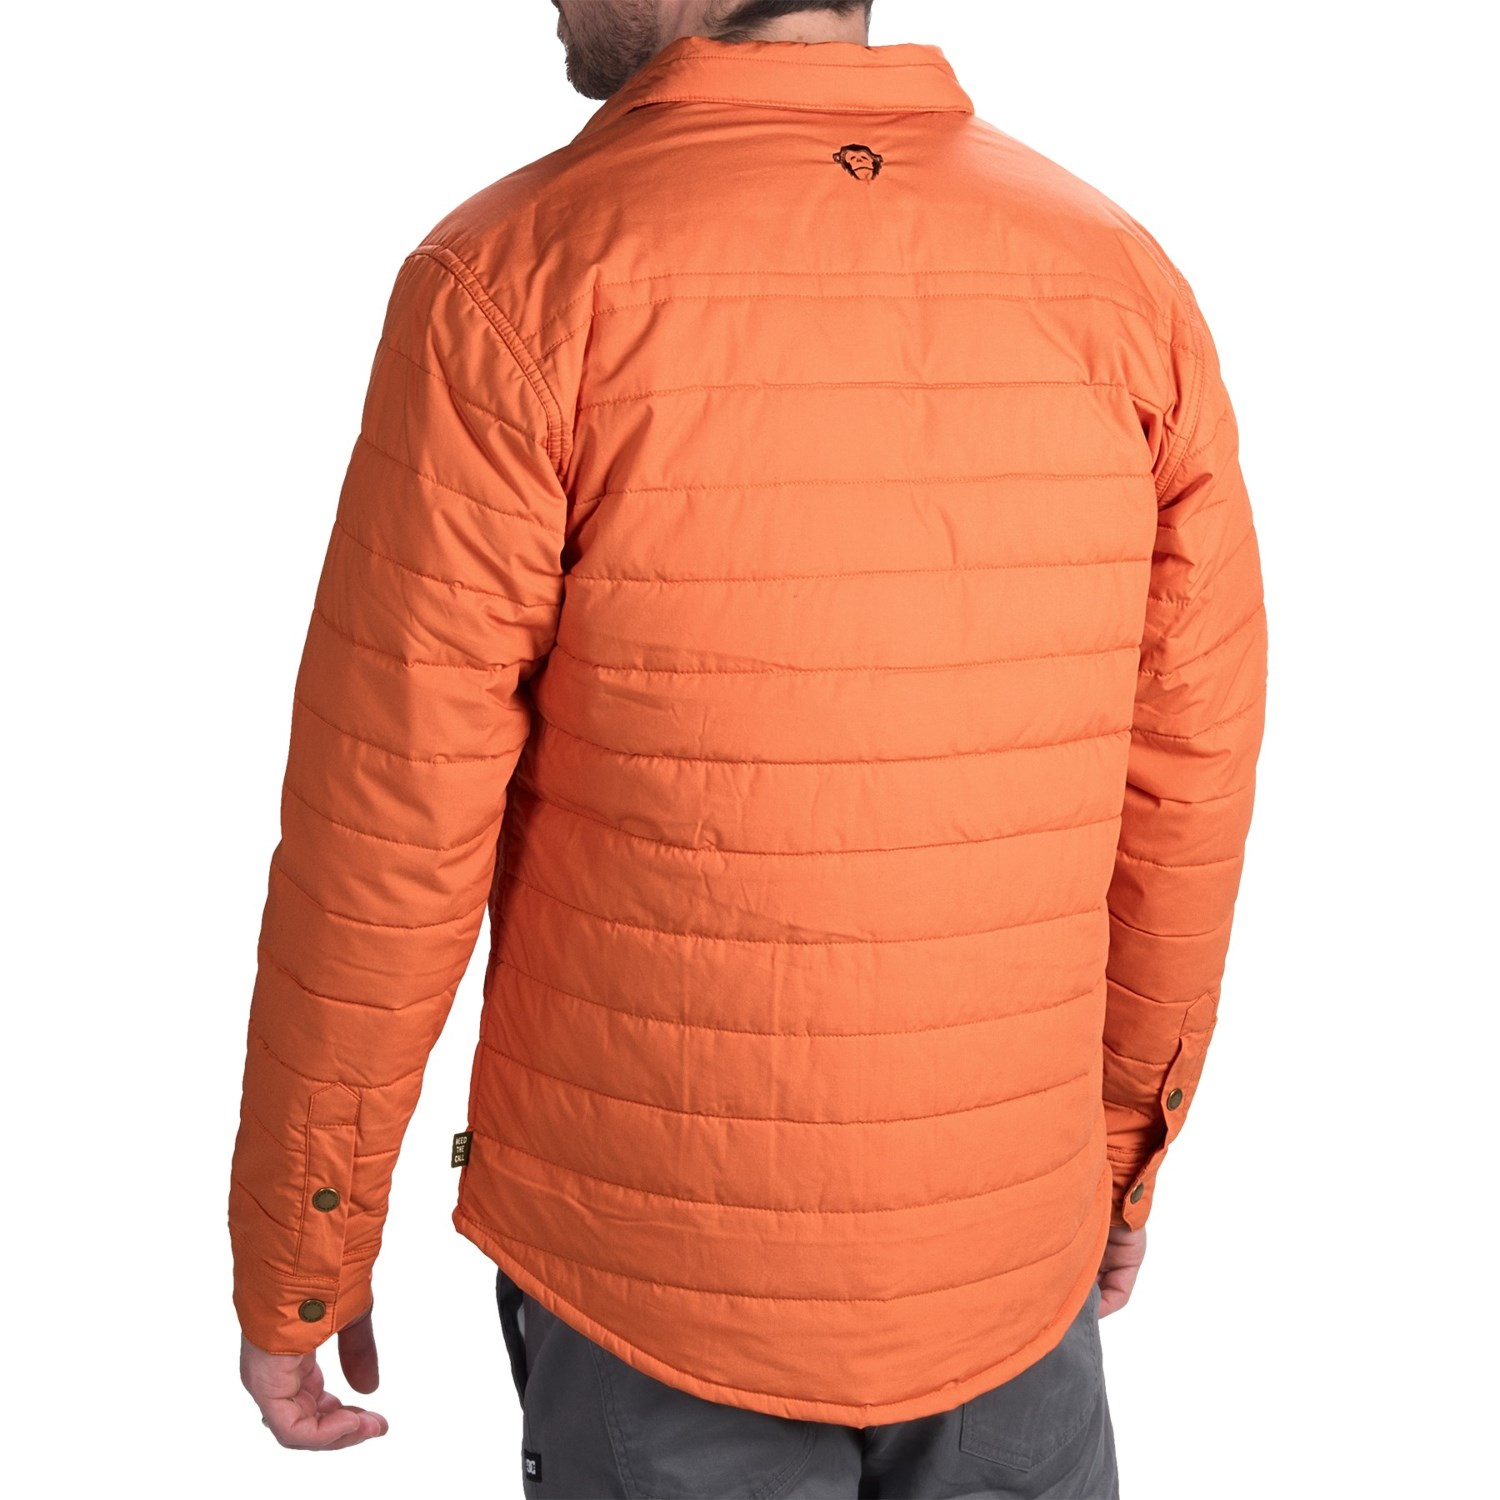 Howler Brothers Esmont Quilted Jacket (For Men) - Save 77% : red quilted jacket mens - Adamdwight.com